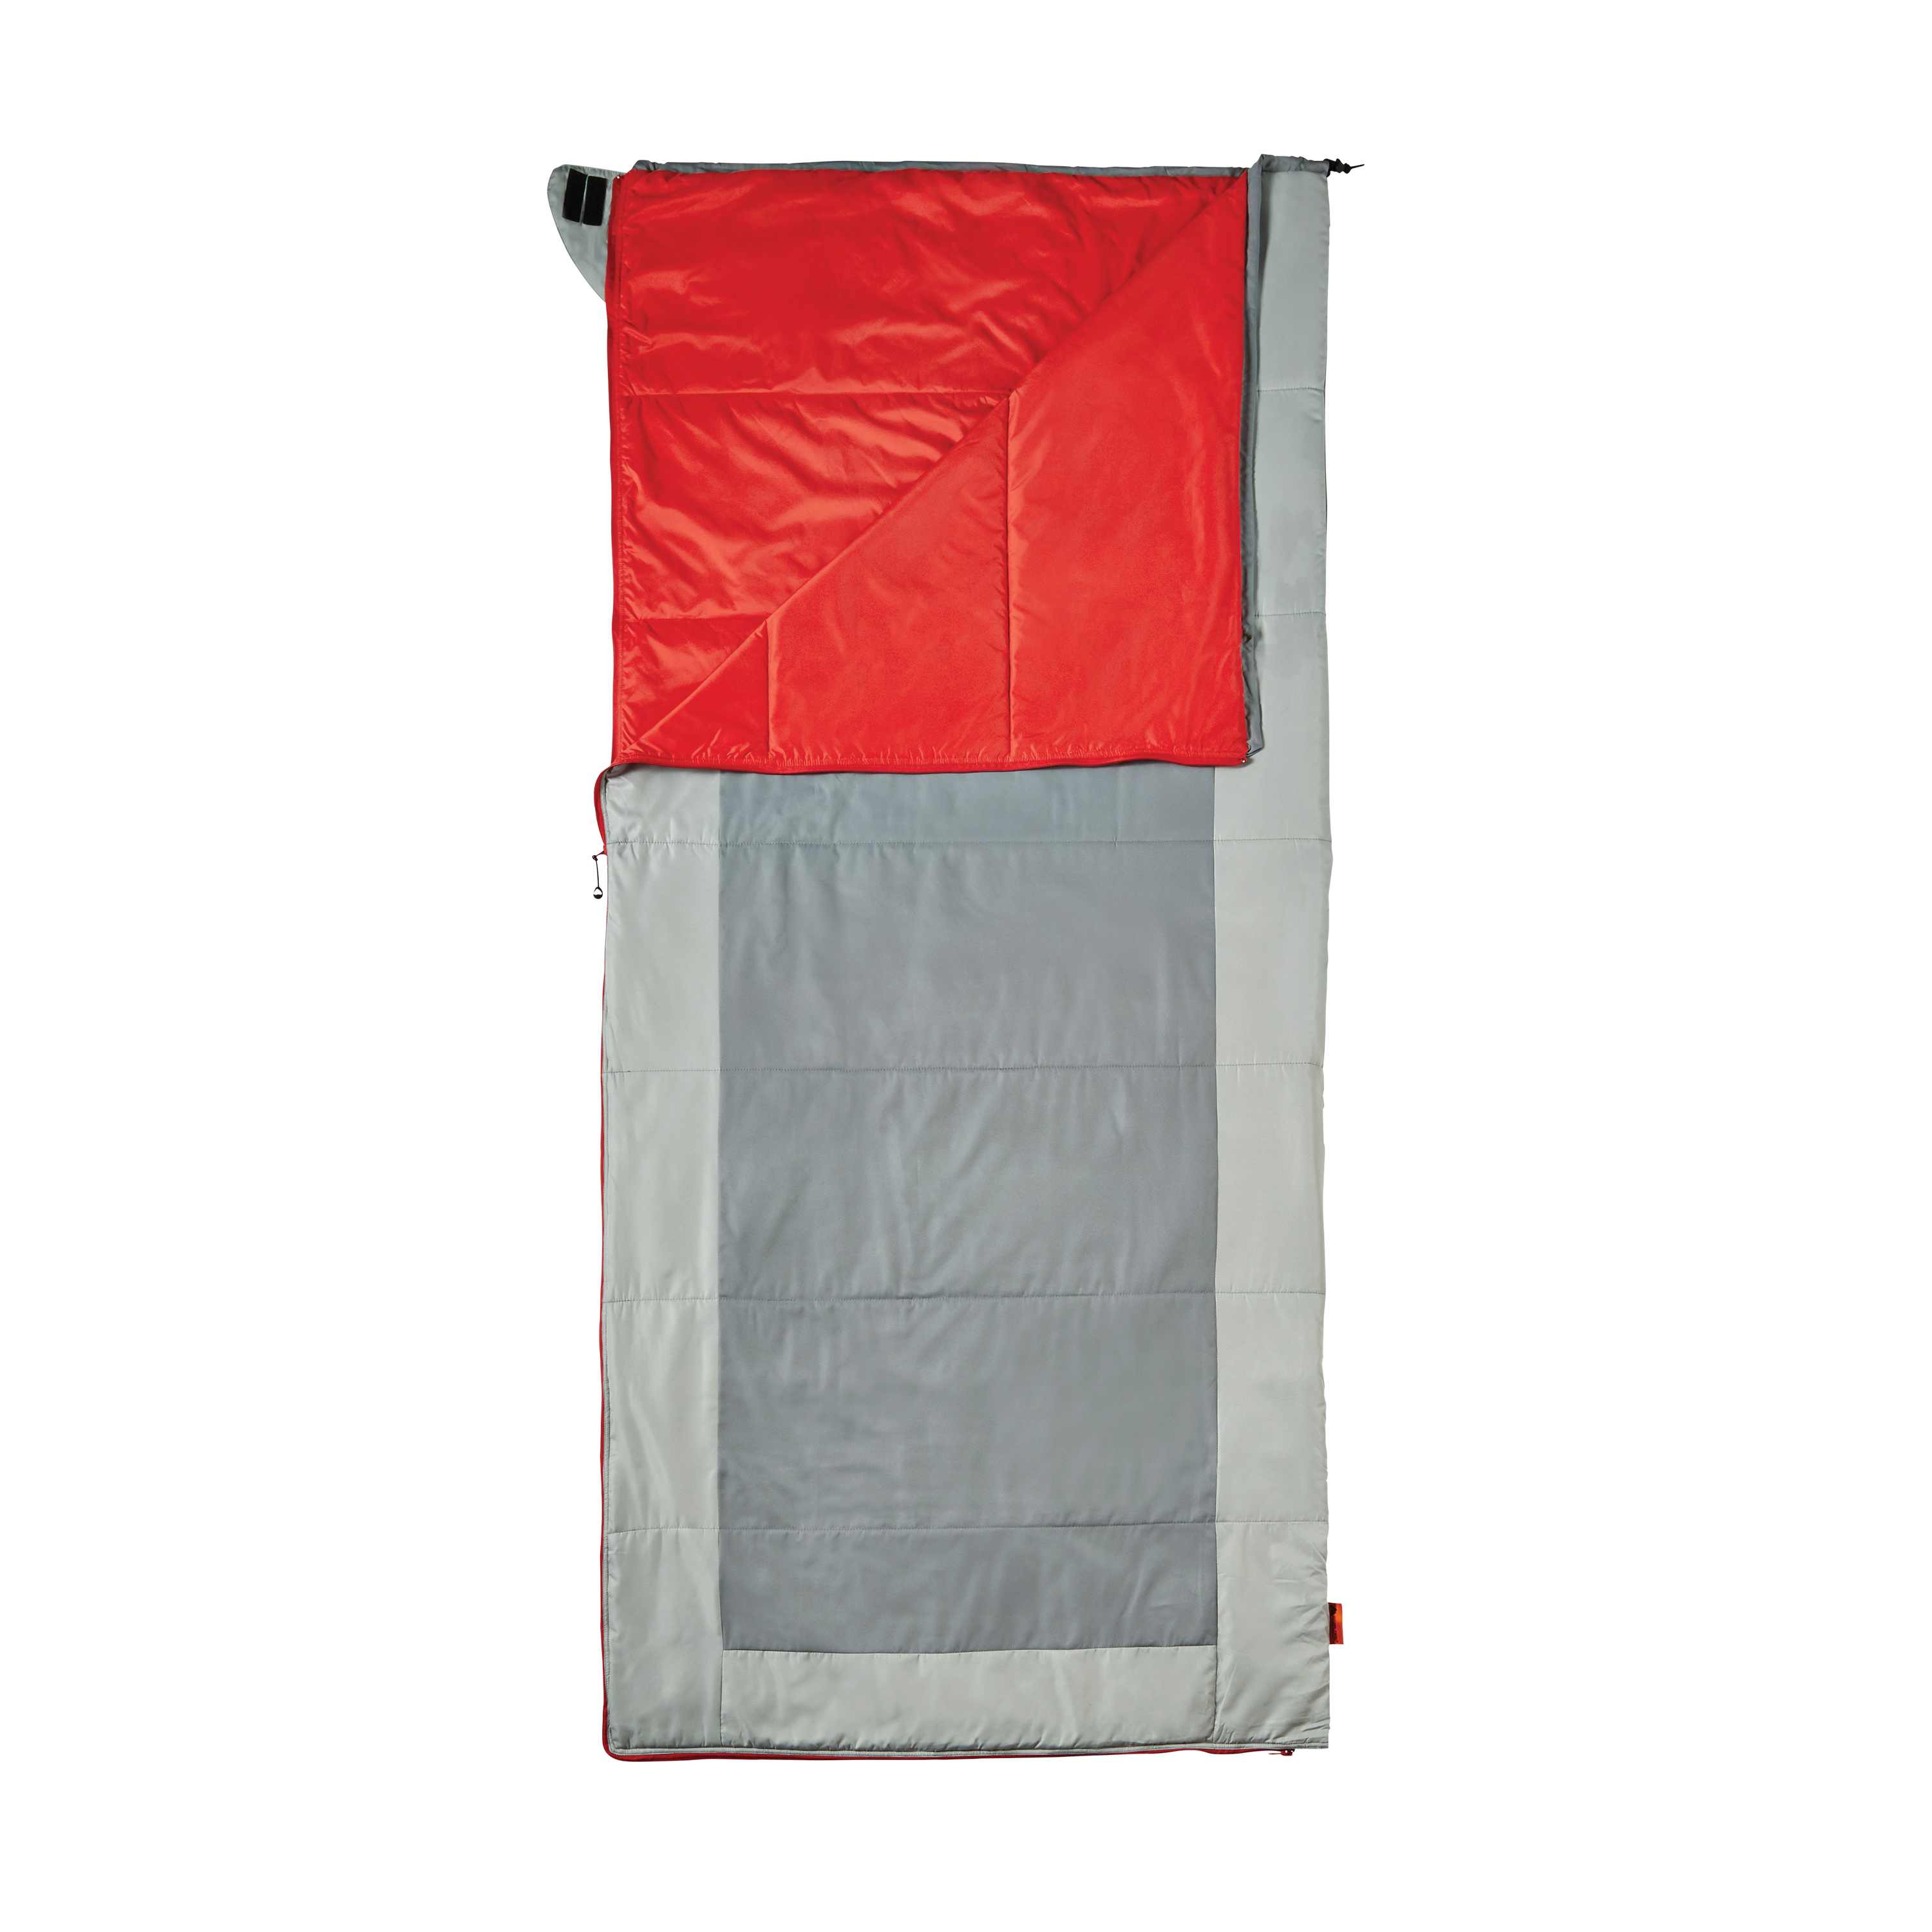 Ozark Trail Climatech 40F Synthetic Sleeping Bag